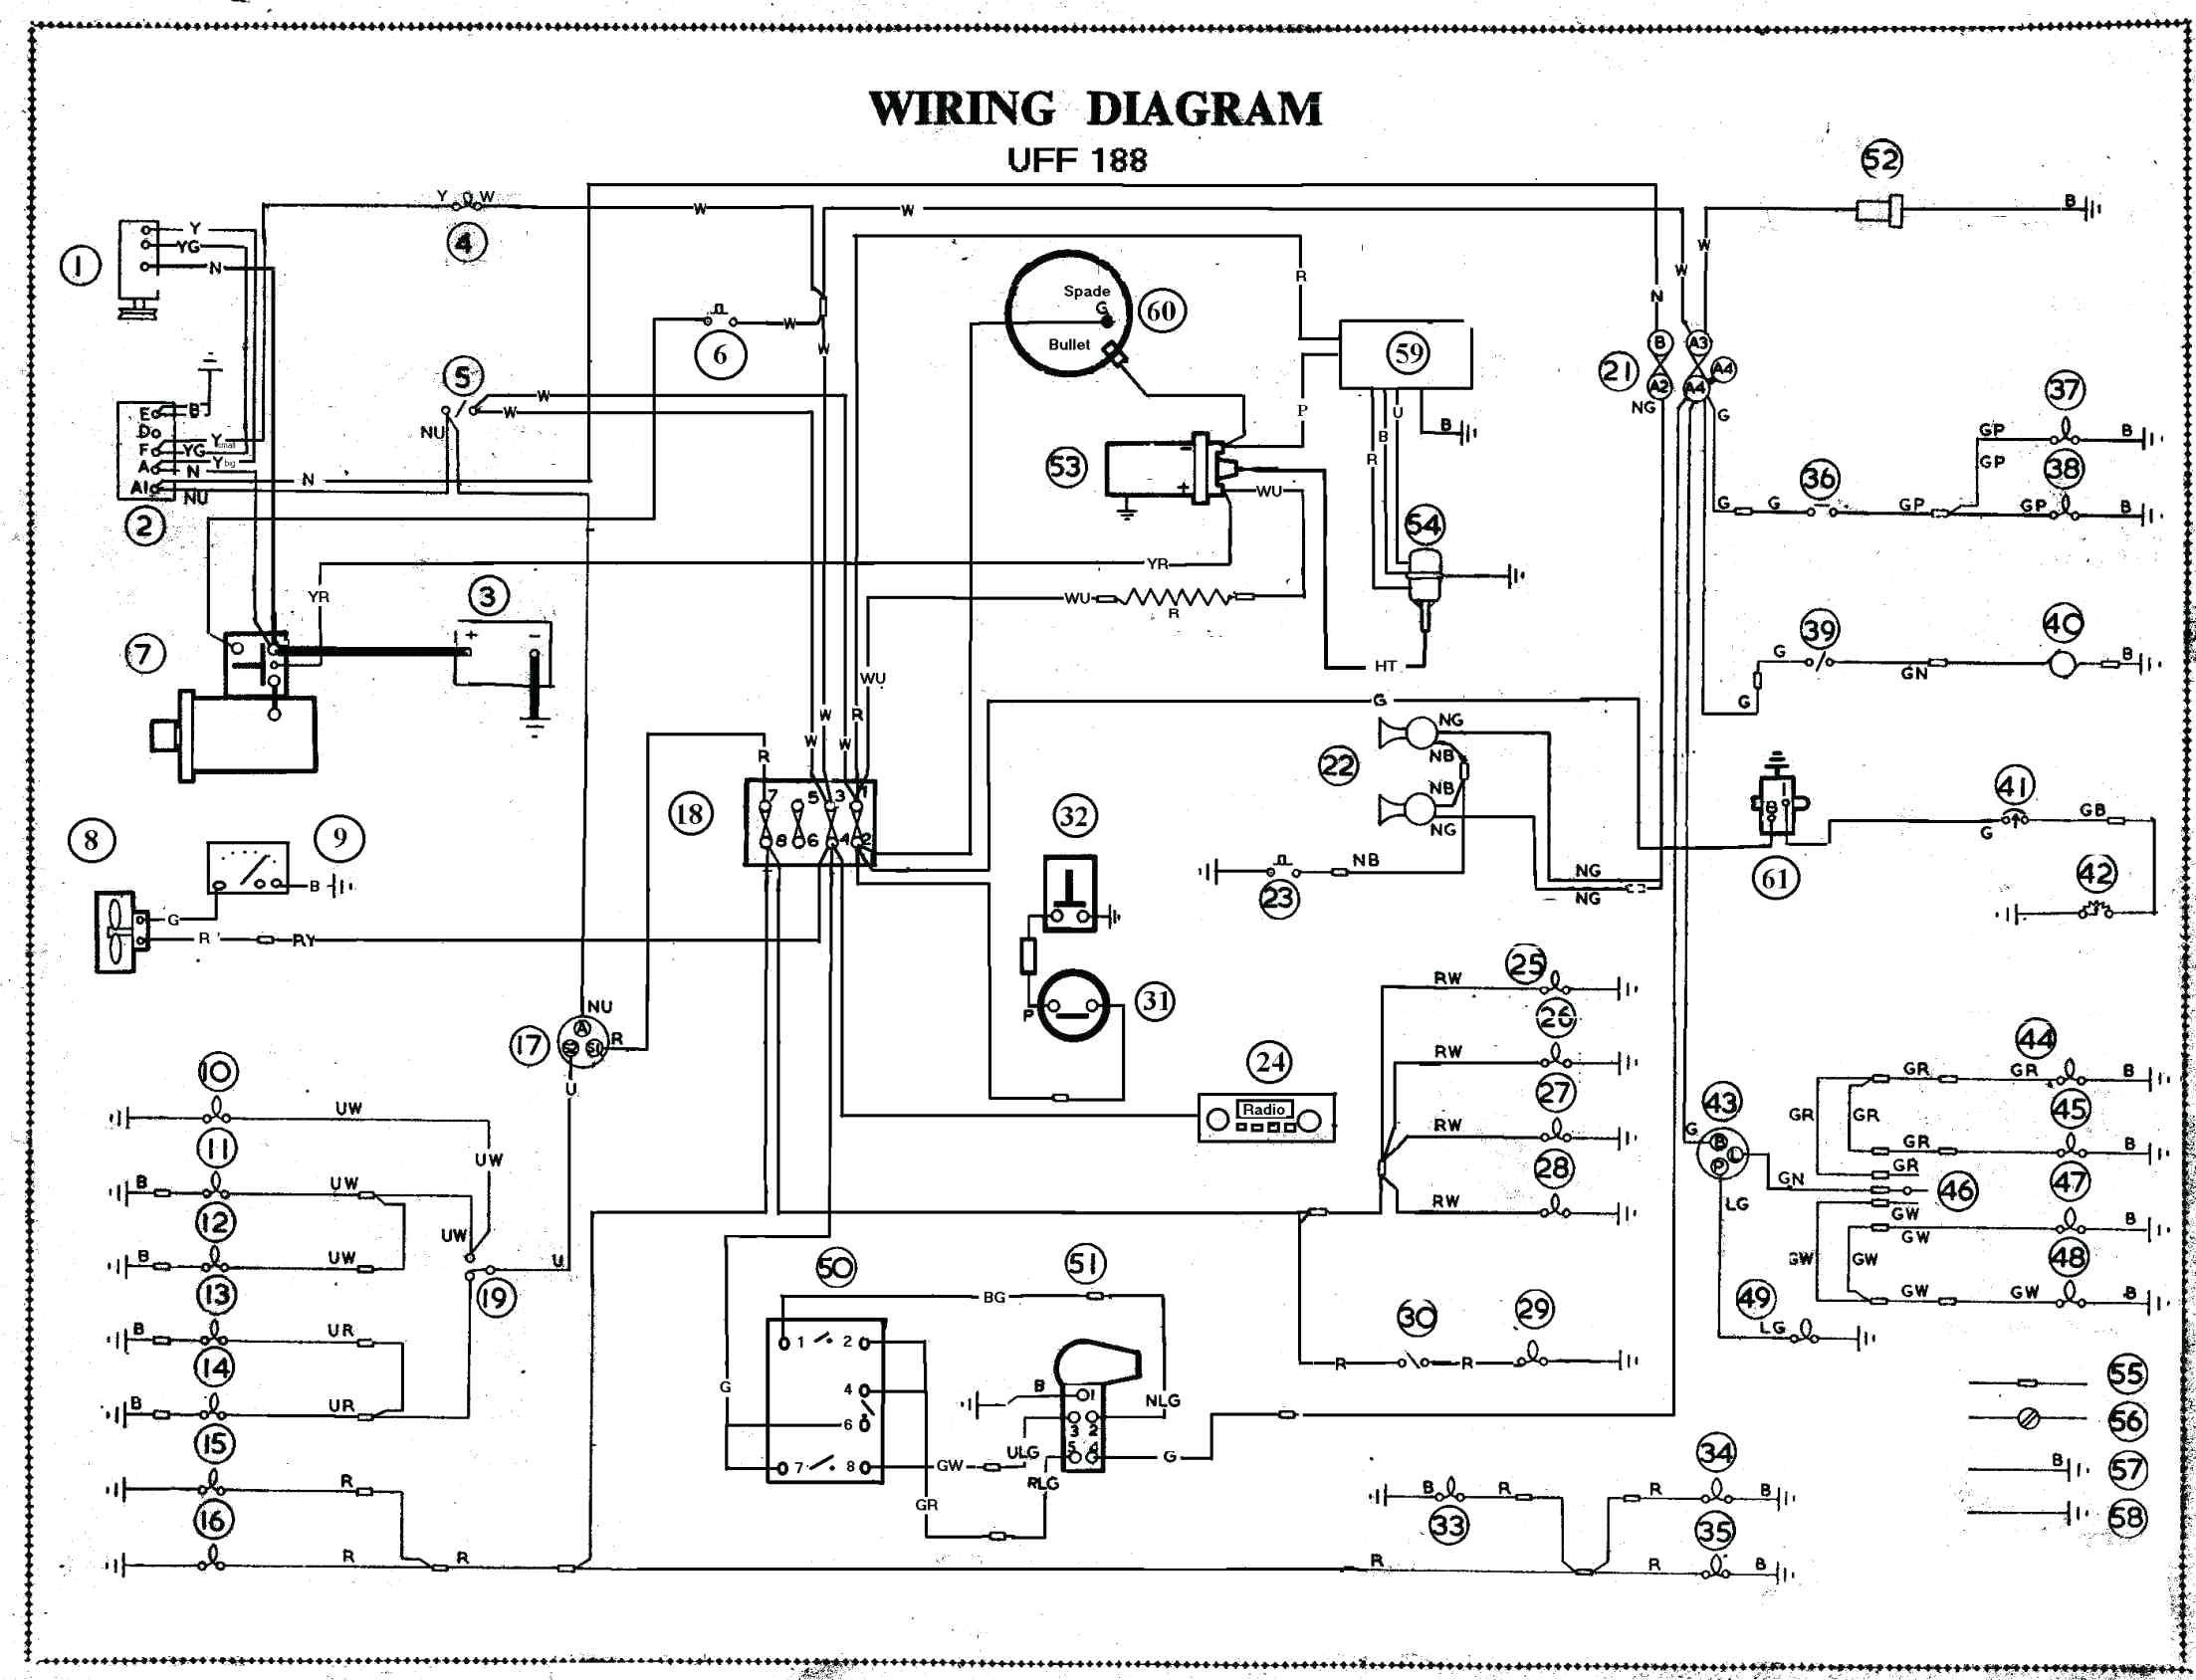 reading aircraft wiring diagrams how to draw workflow diagram software gallery